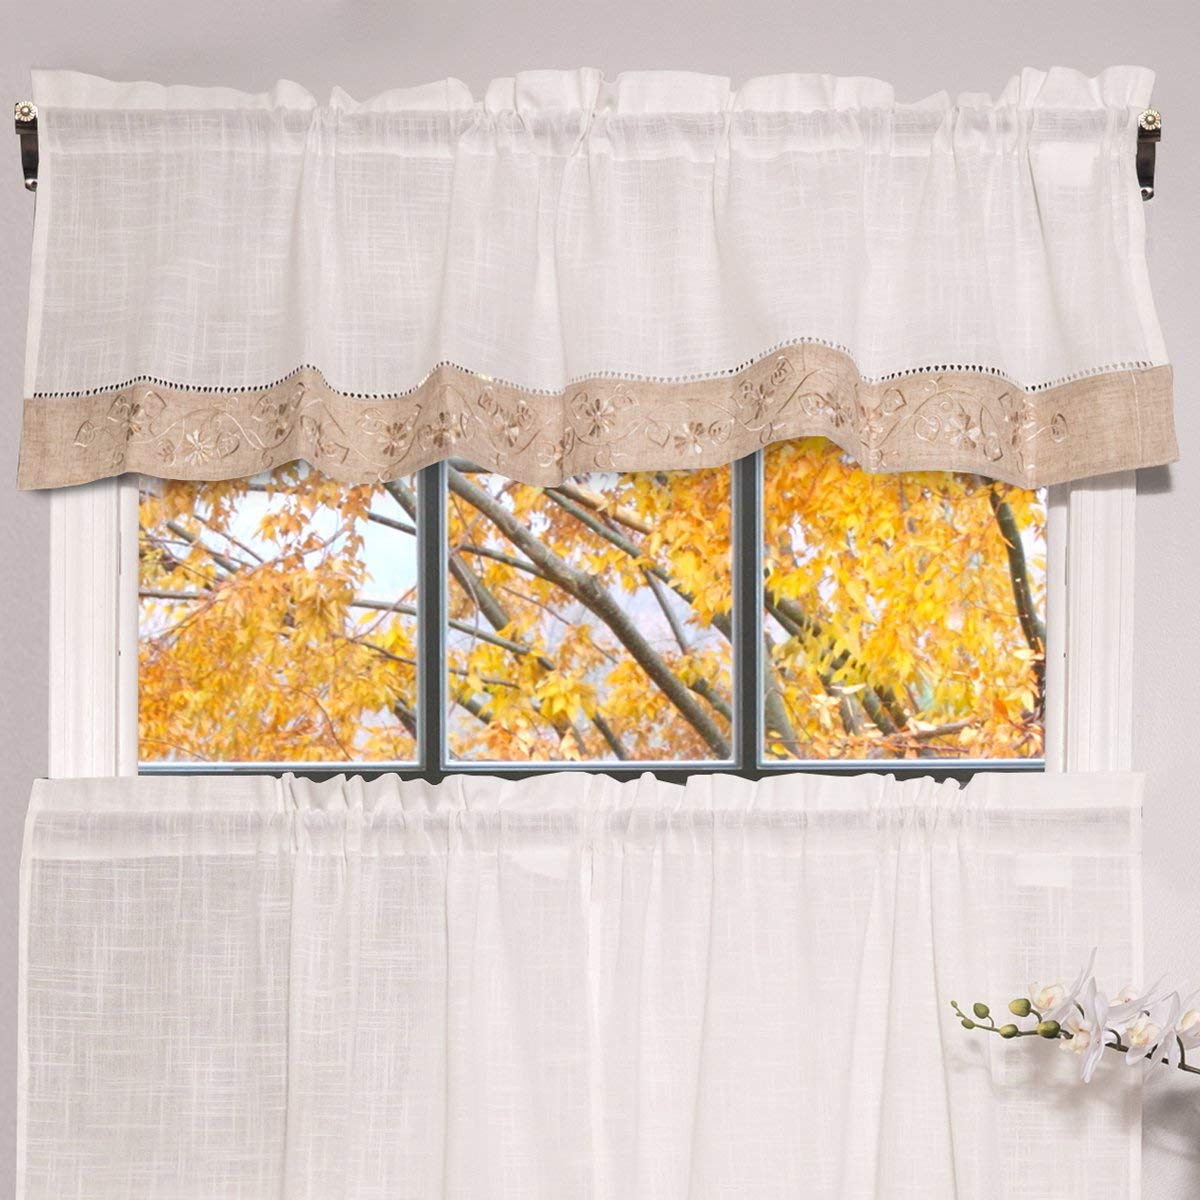 Oakwood Linen Style Decorative Curtain Tier Sets With Regard To 2021 Amazon: Bed Bath N More Oakwood Linen Style Decorative (View 14 of 20)